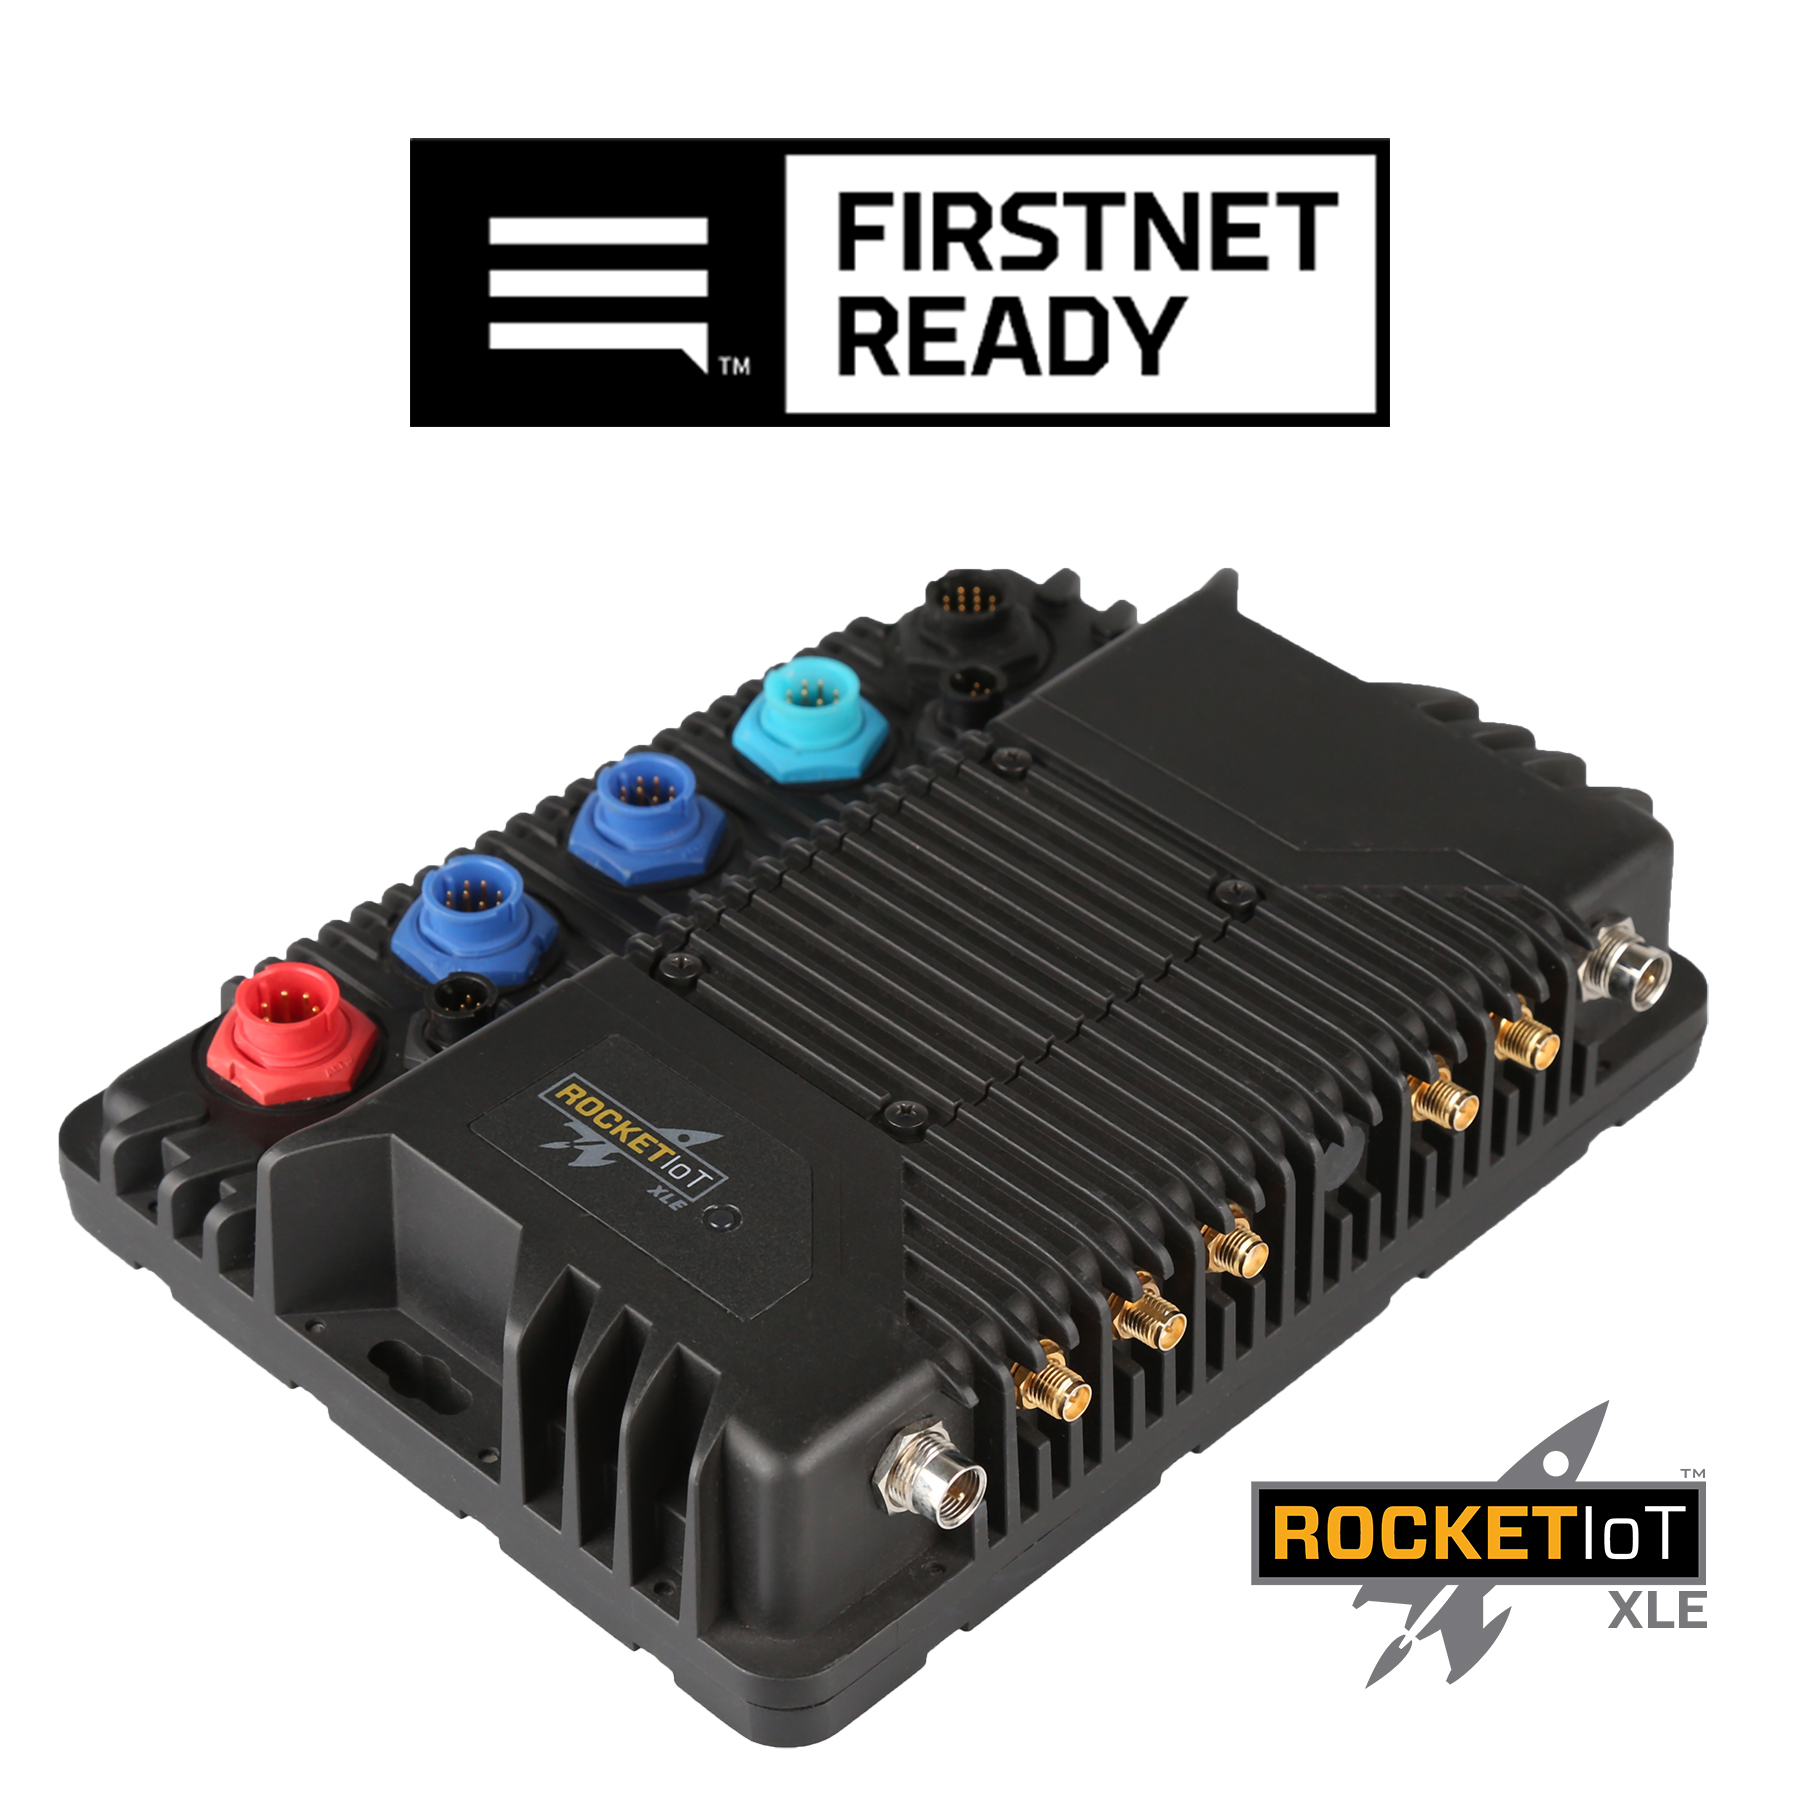 Utility's Rocket IoT XLE, newly certified FirstNet Ready device